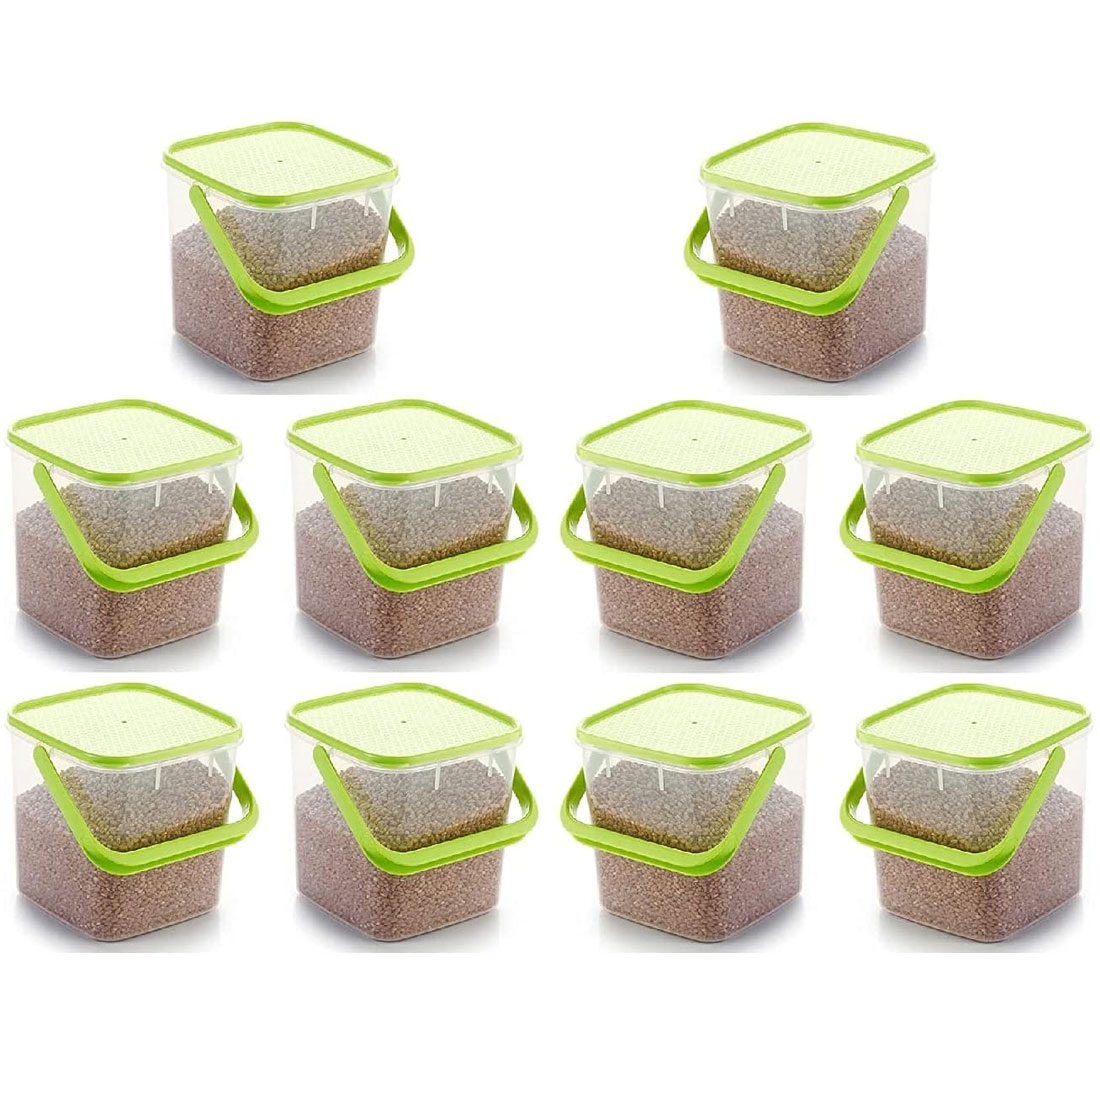 SOLOMON PREMIUM QUALITY 5KG SQUARE CONTAINER WITH GREEN CAP PACK OF 10